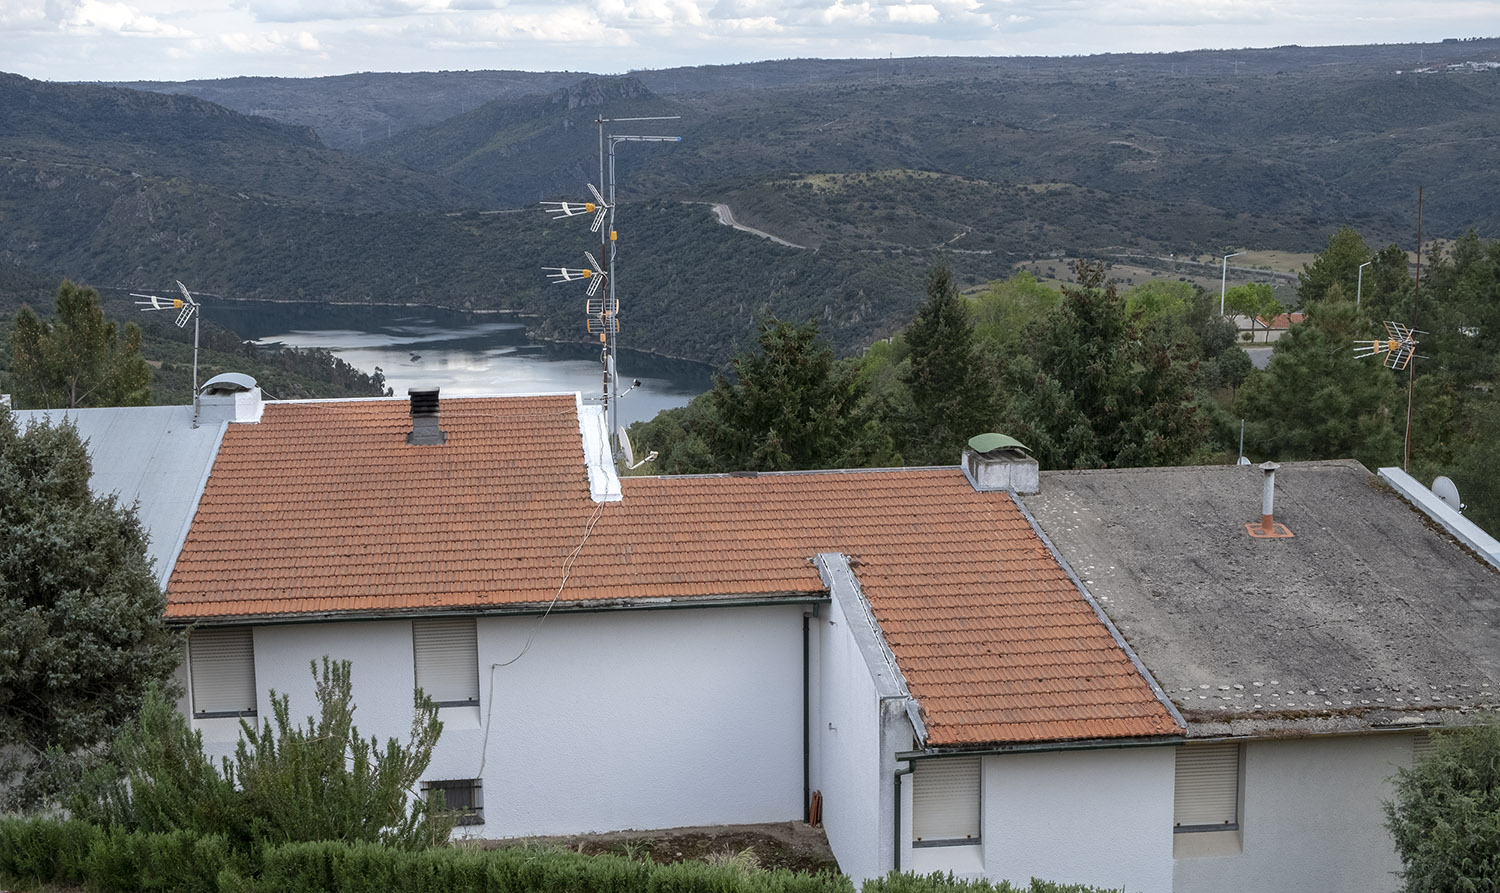 Cardal do Douro